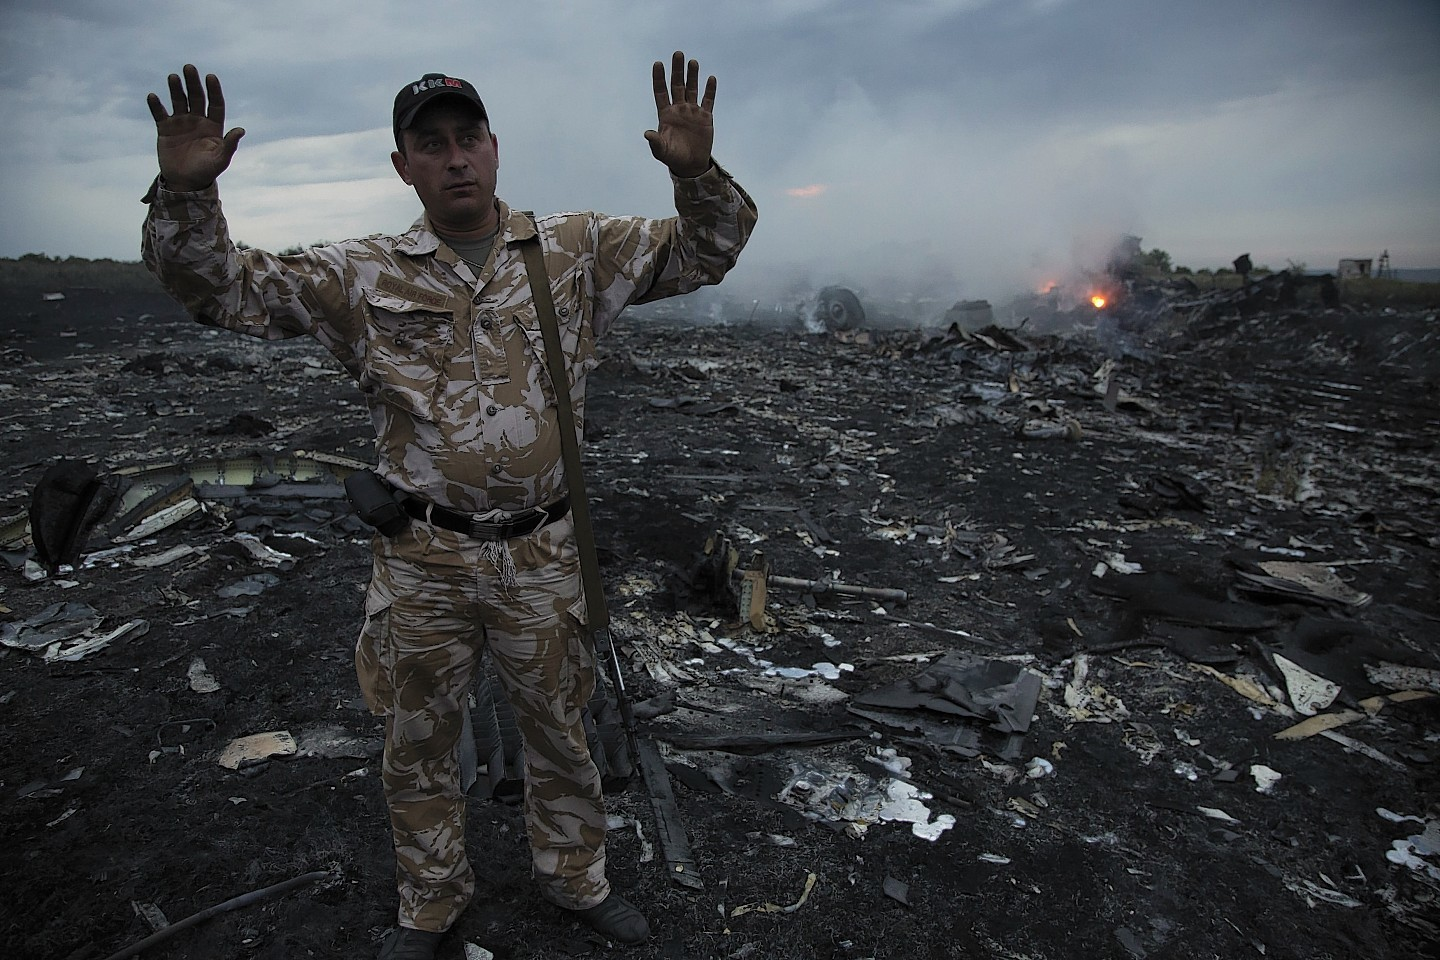 Smoke rises up at a crash site of a passenger plane, near the village of Grabovo, Ukraine (AP)